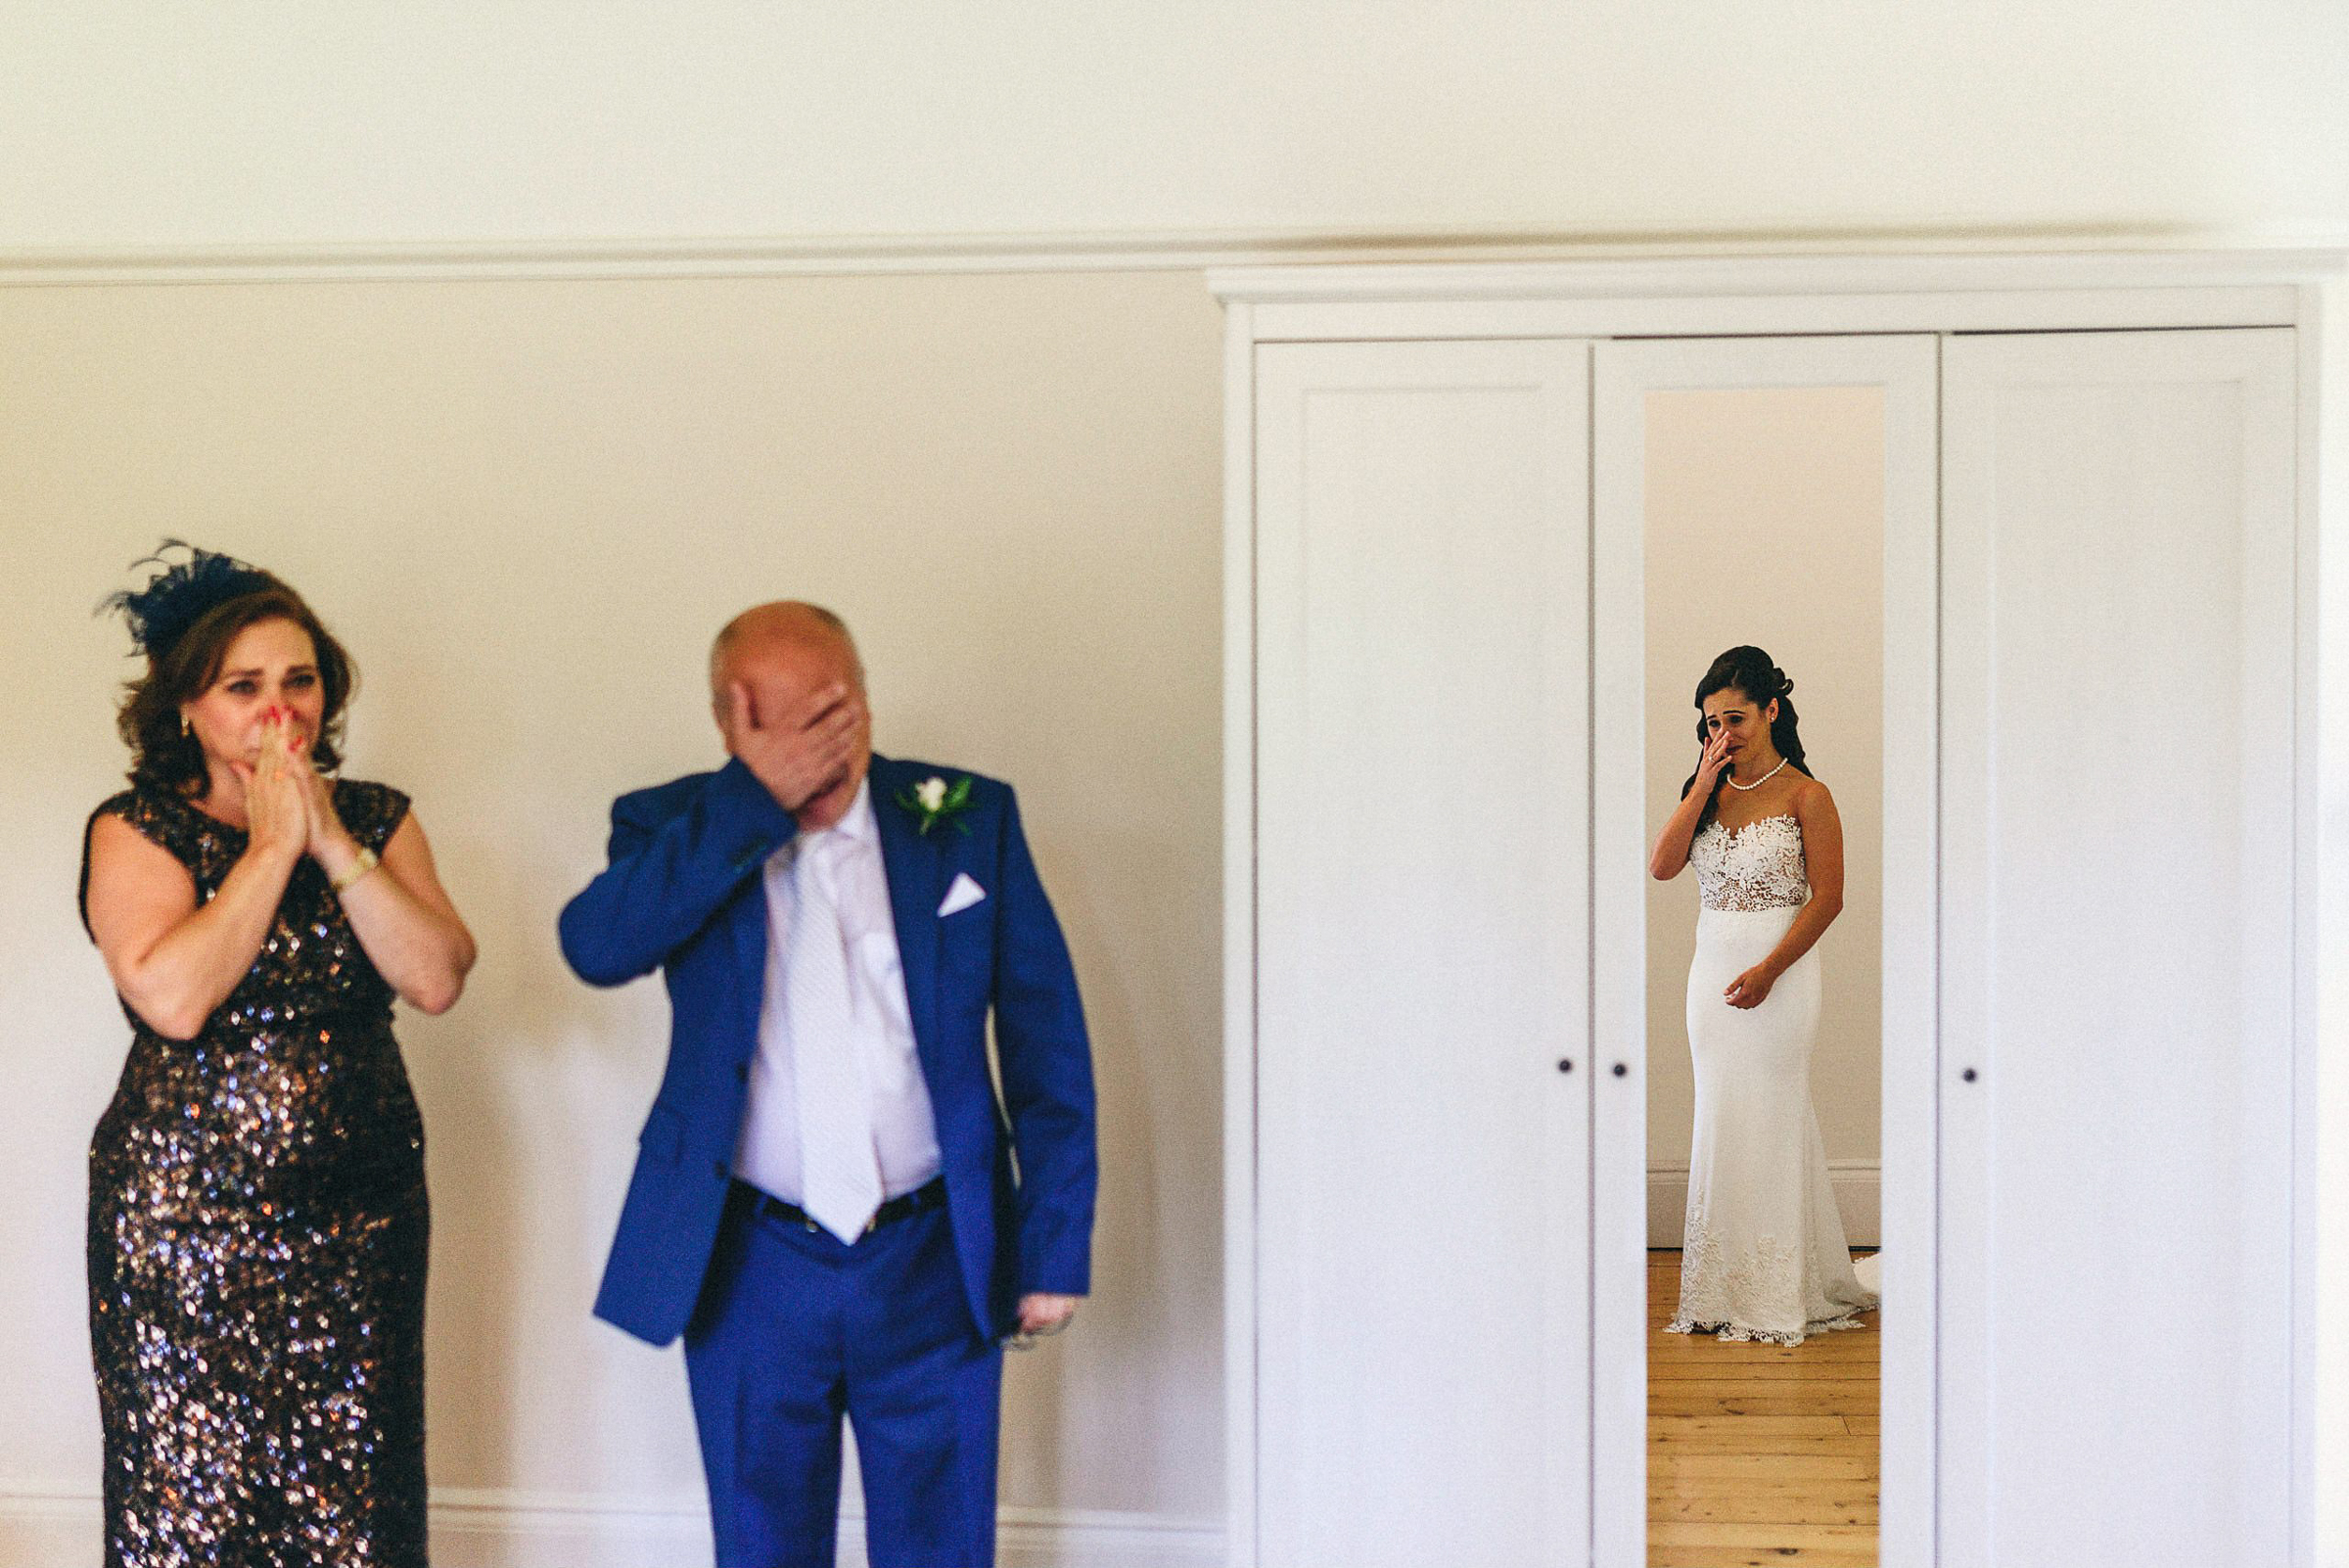 Emotional bride and parents - photo by MIKI STUDIOS